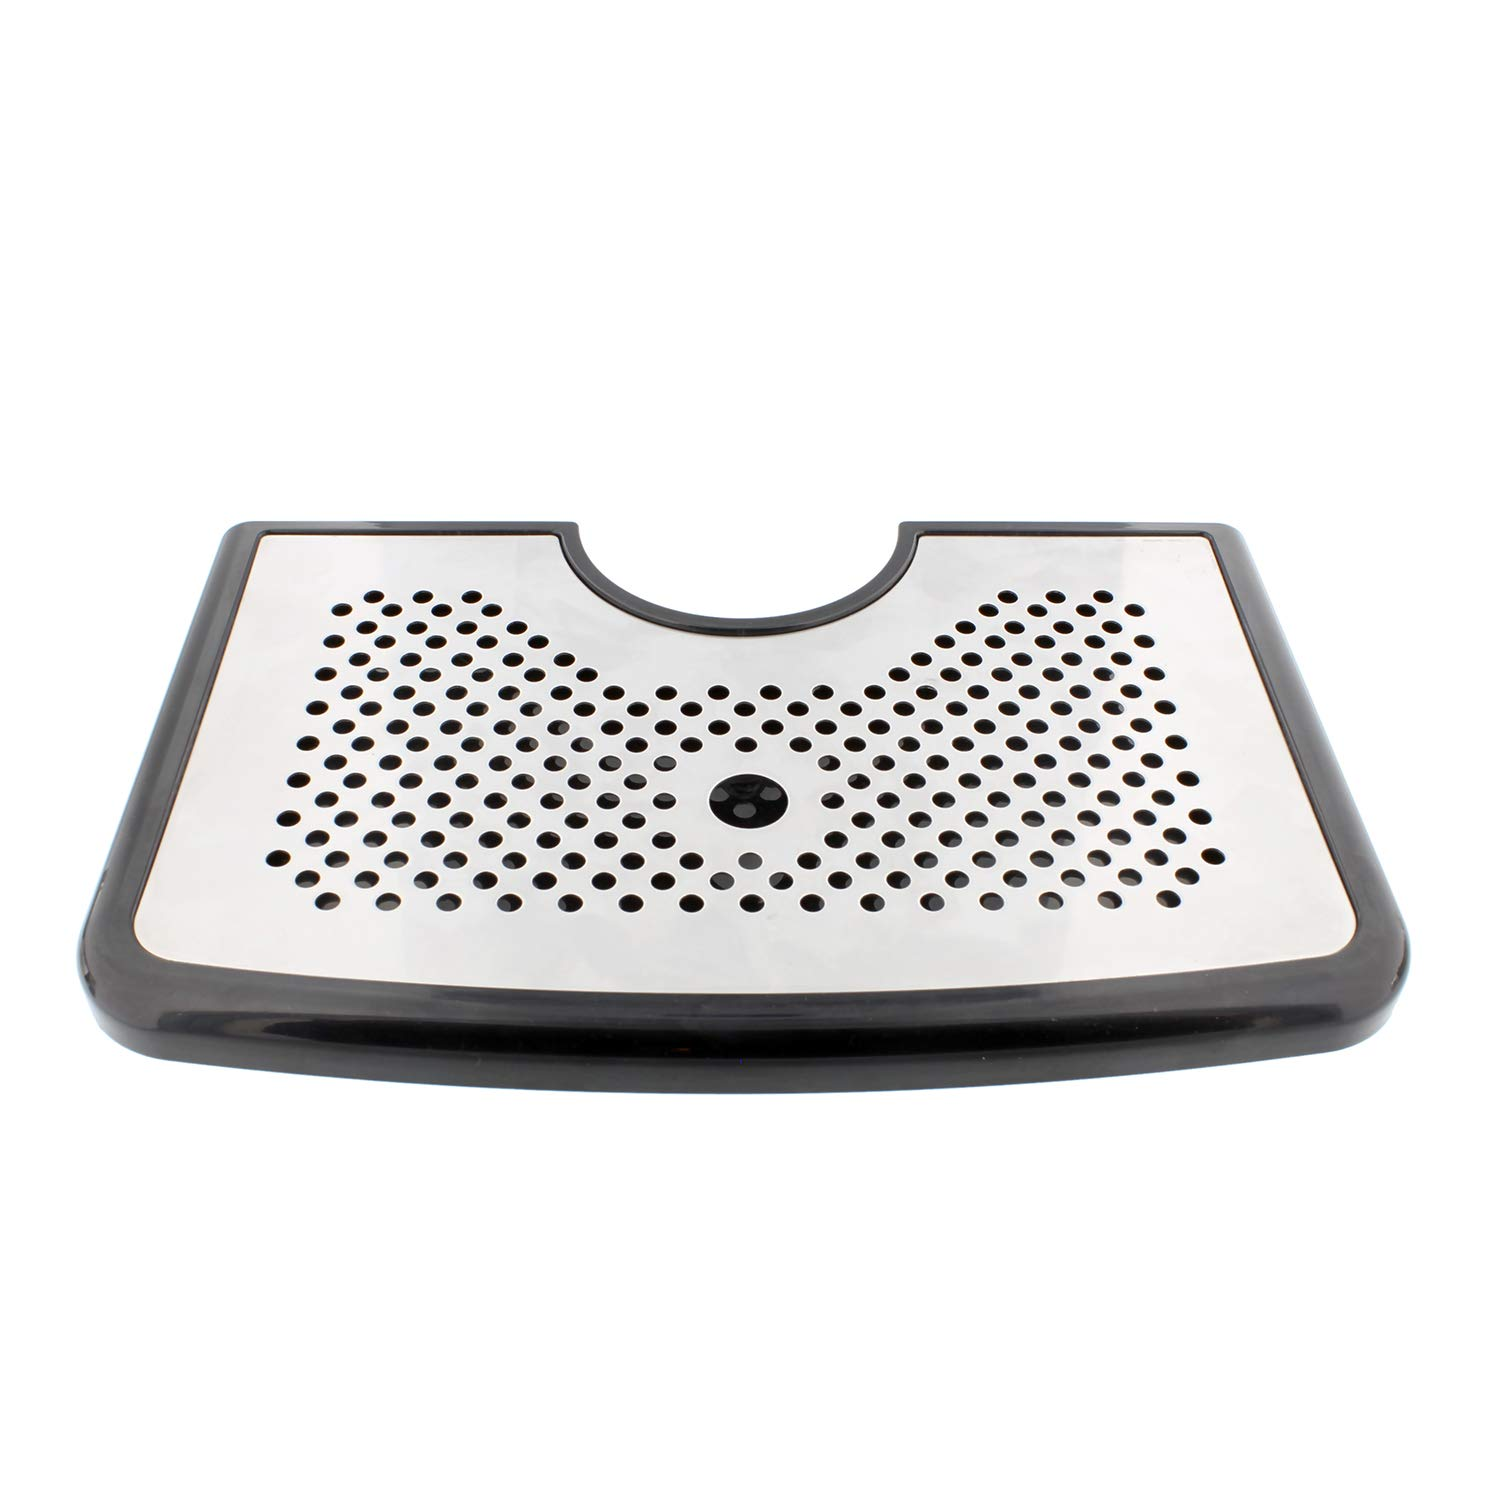 Bar Drip Tray - Stainless Steel and Plastic Tray with Non Slip Rubber Grip, Large Drip Tray for Beverage Dispenser